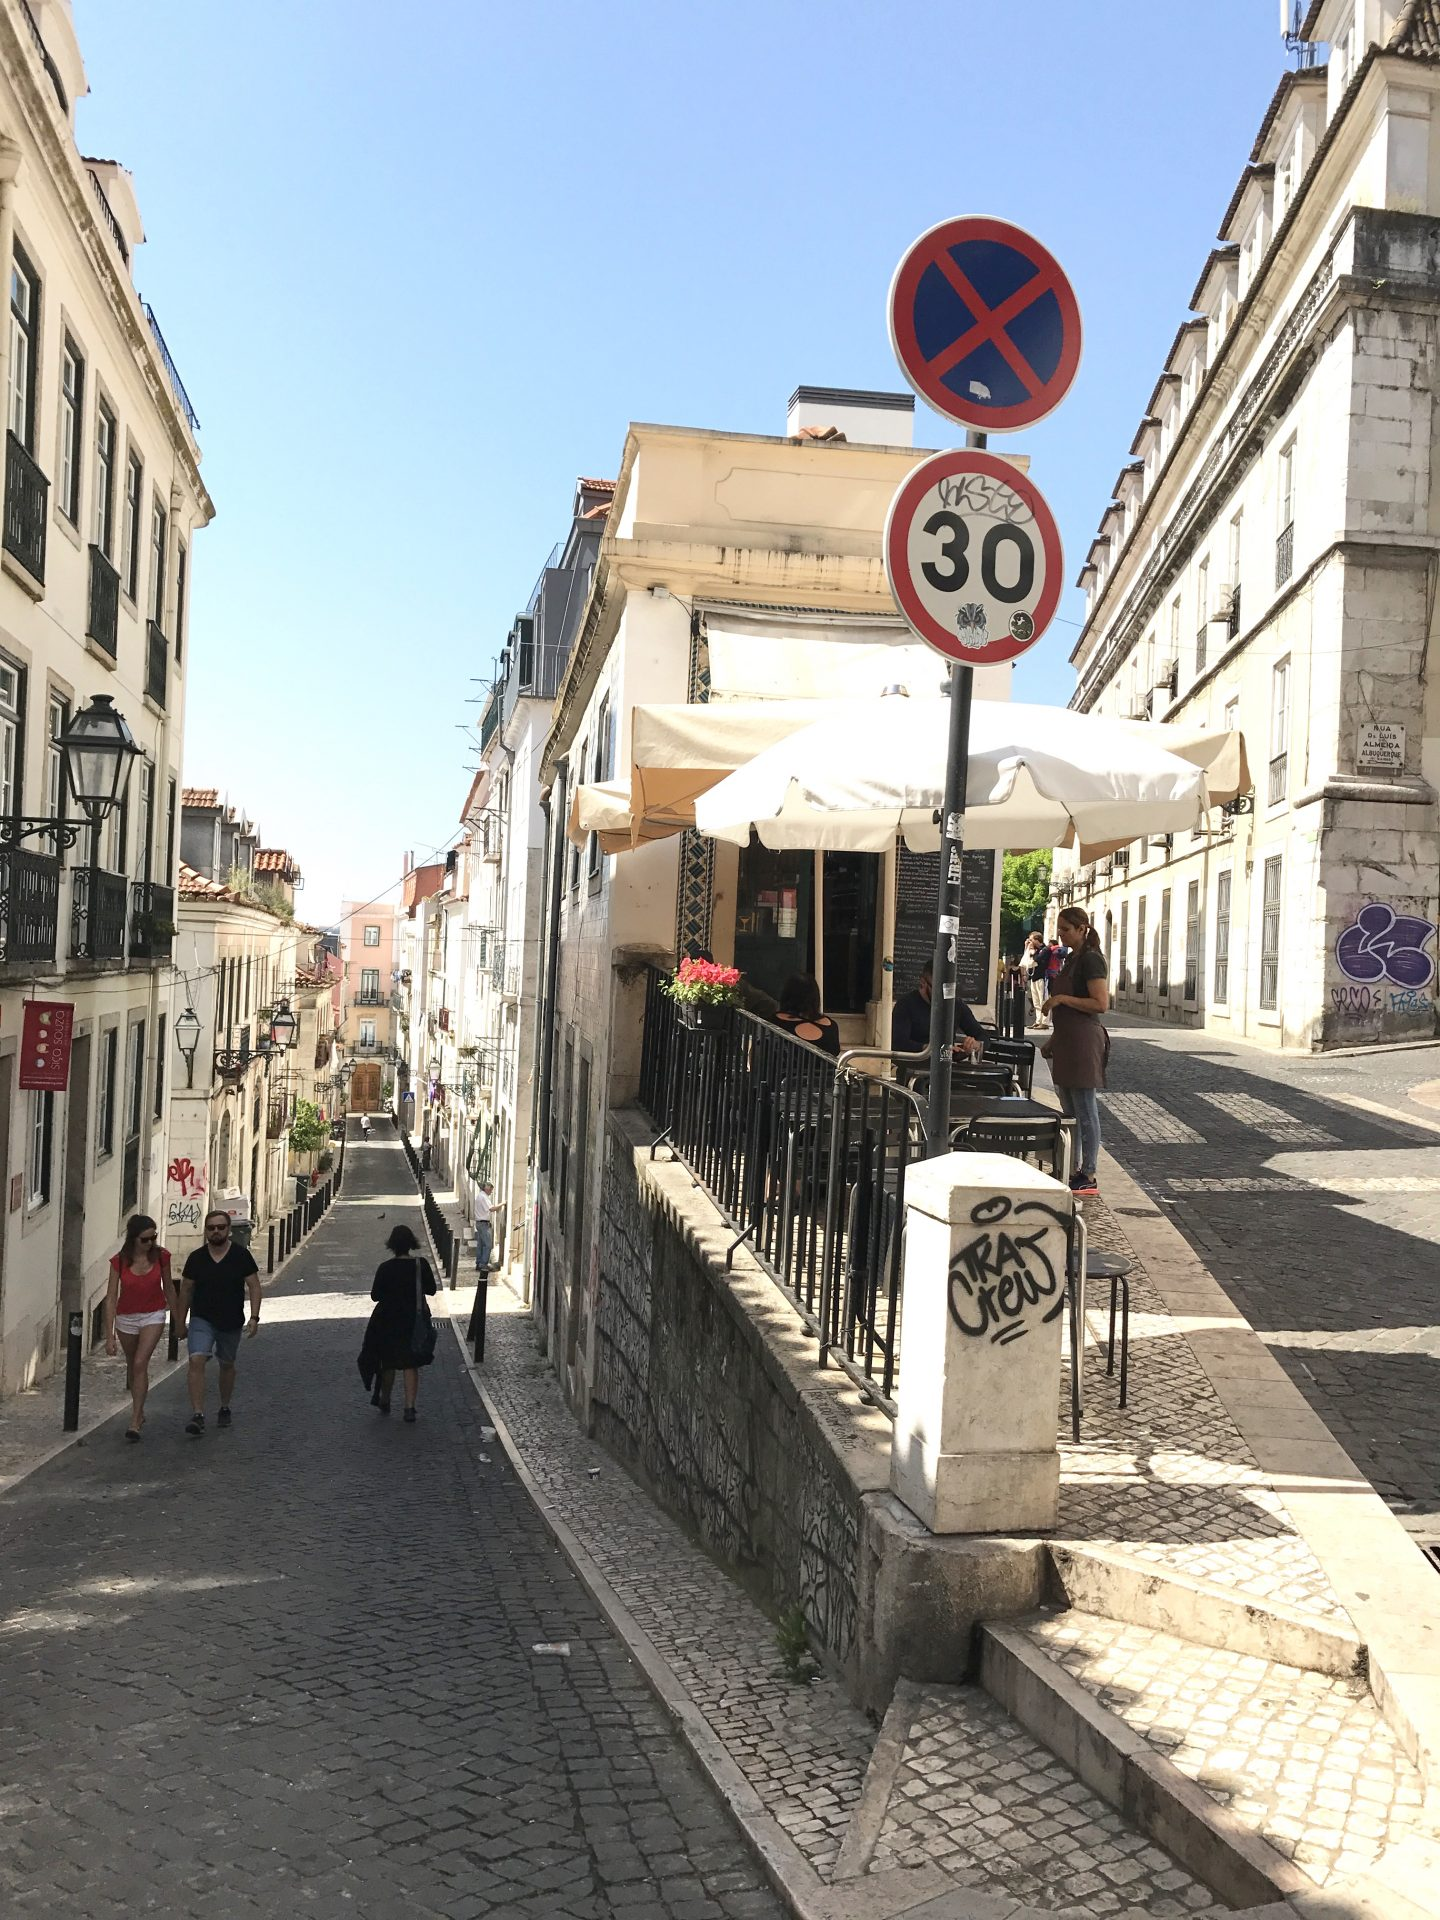 The lisbon guide 11 - ByMeryl